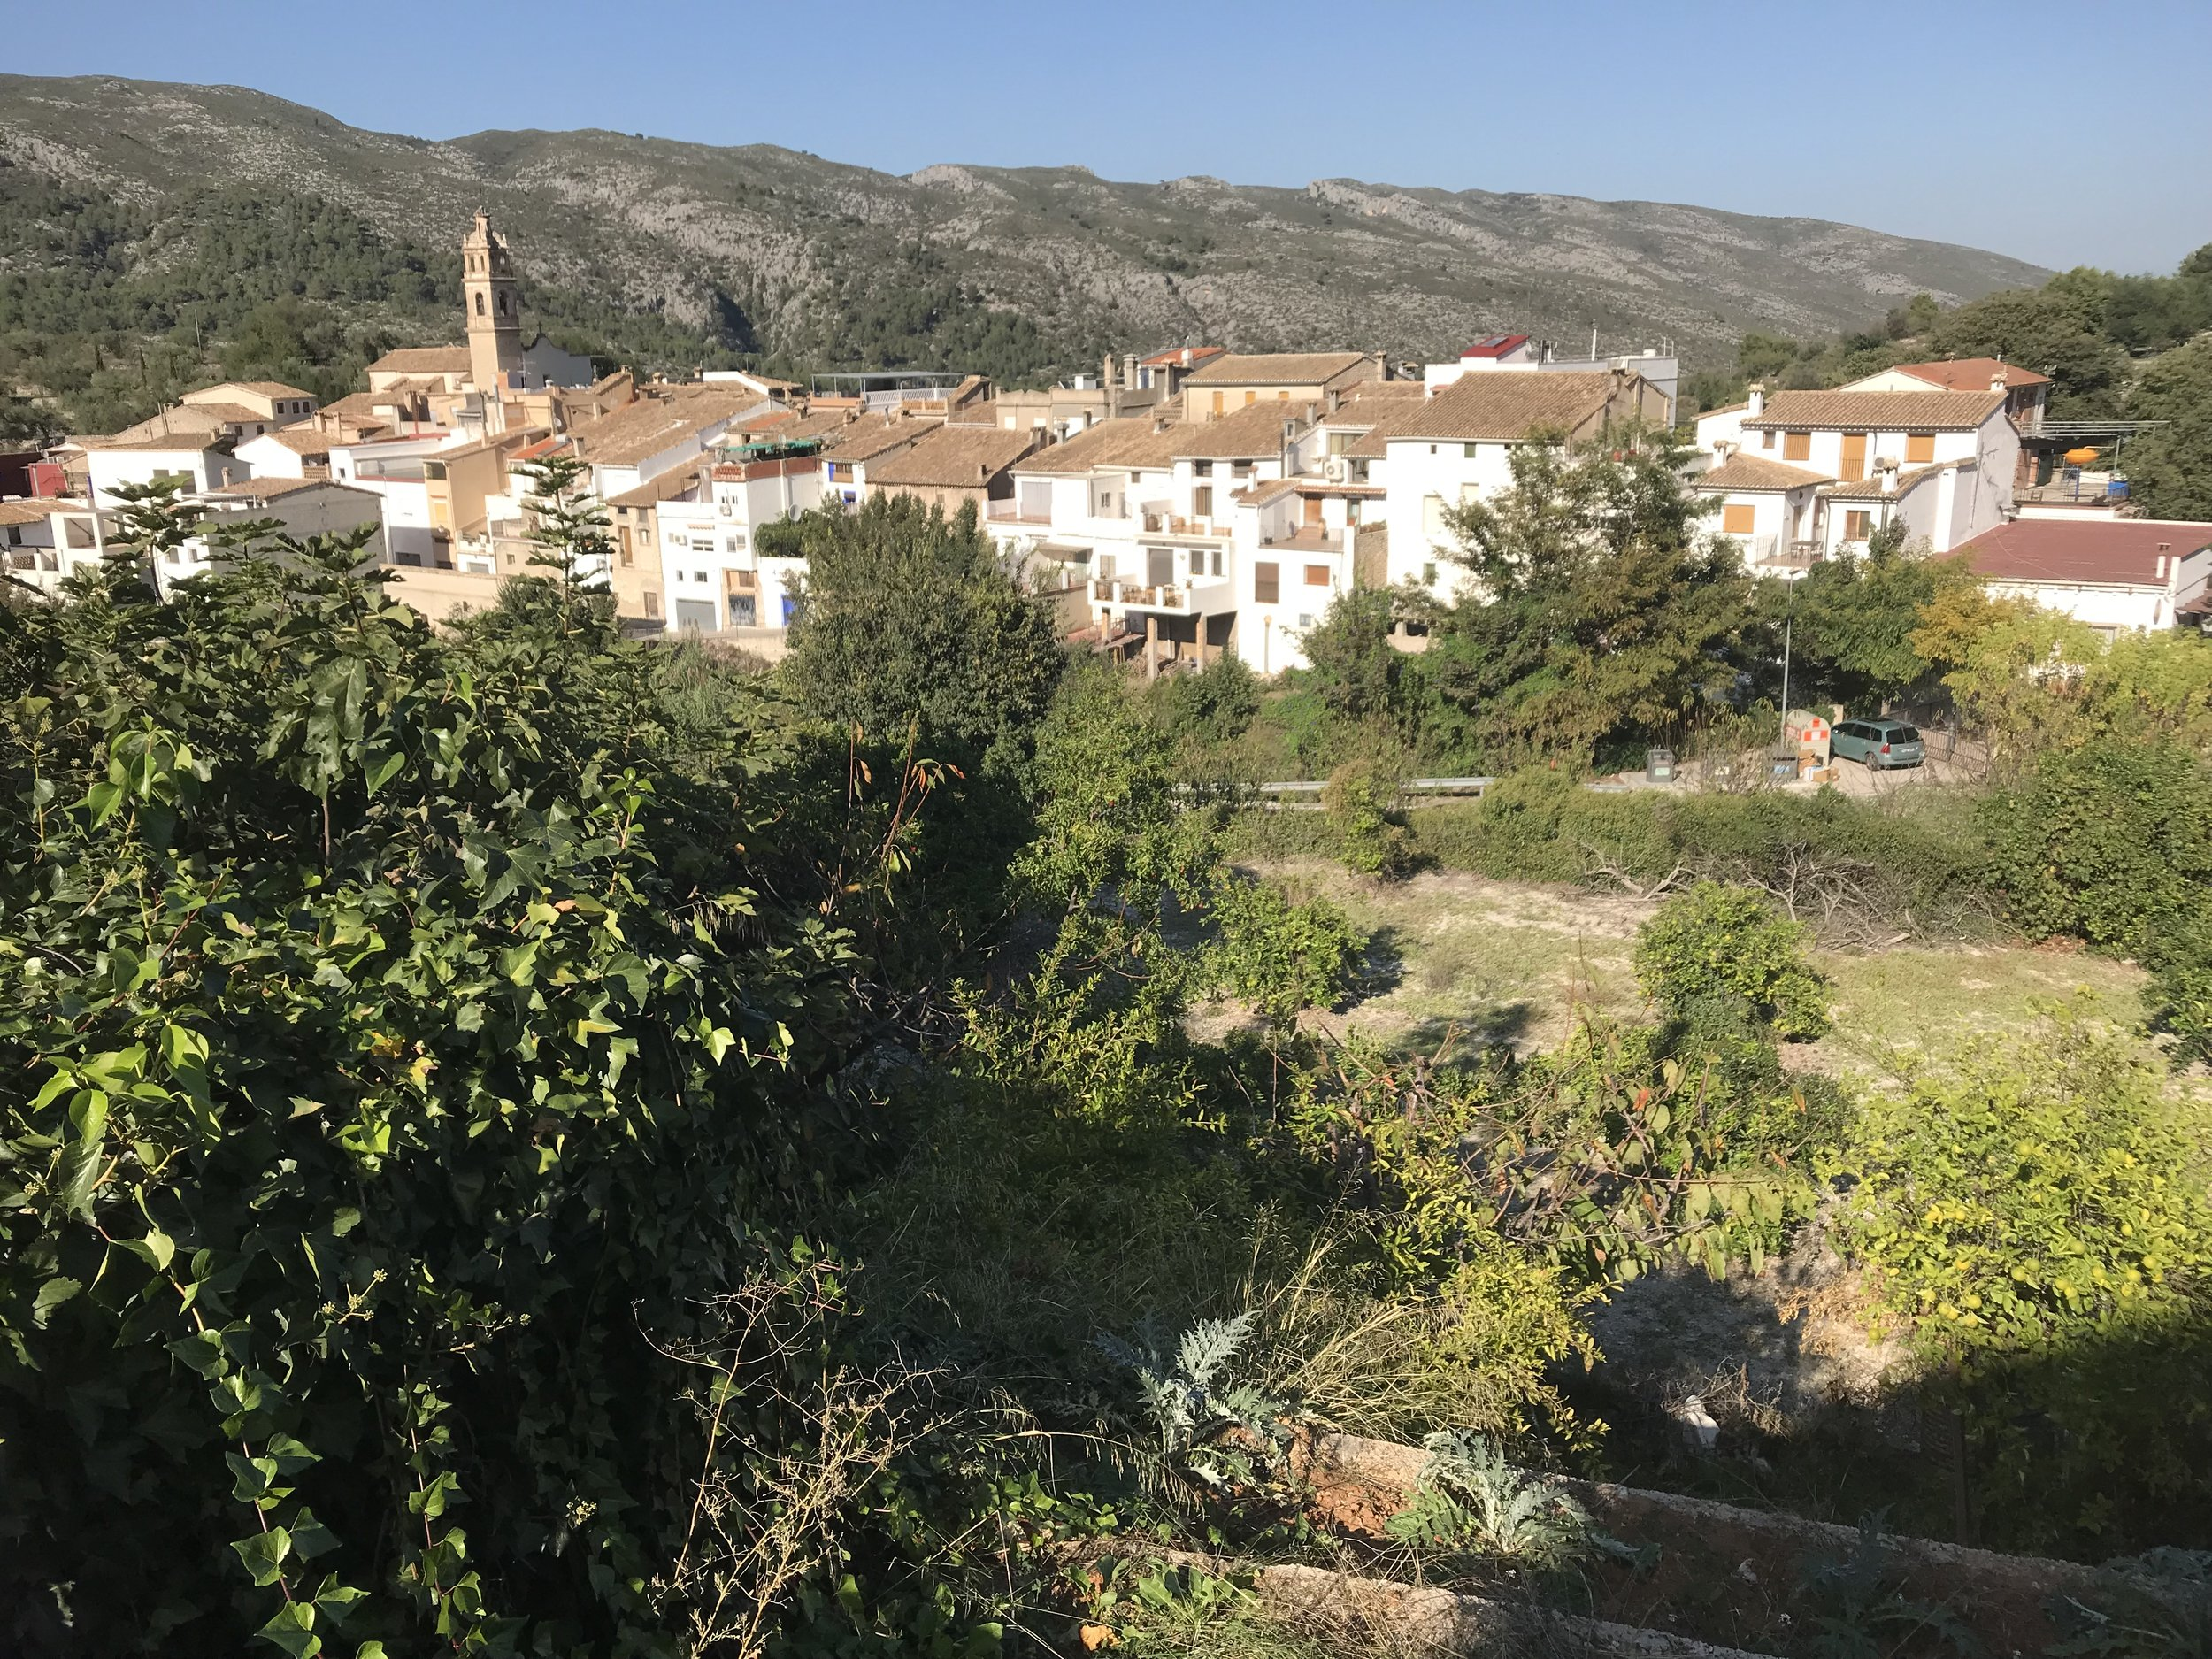 Countryside Properties - A selection of our hand-picked properties in and around the smaller towns of the Marina Alta.Here, you can find details of the properties we have listed for sale in Pedreguer, Gata de Gorgos, Benitachell, La Xara and Vall de la gallinera